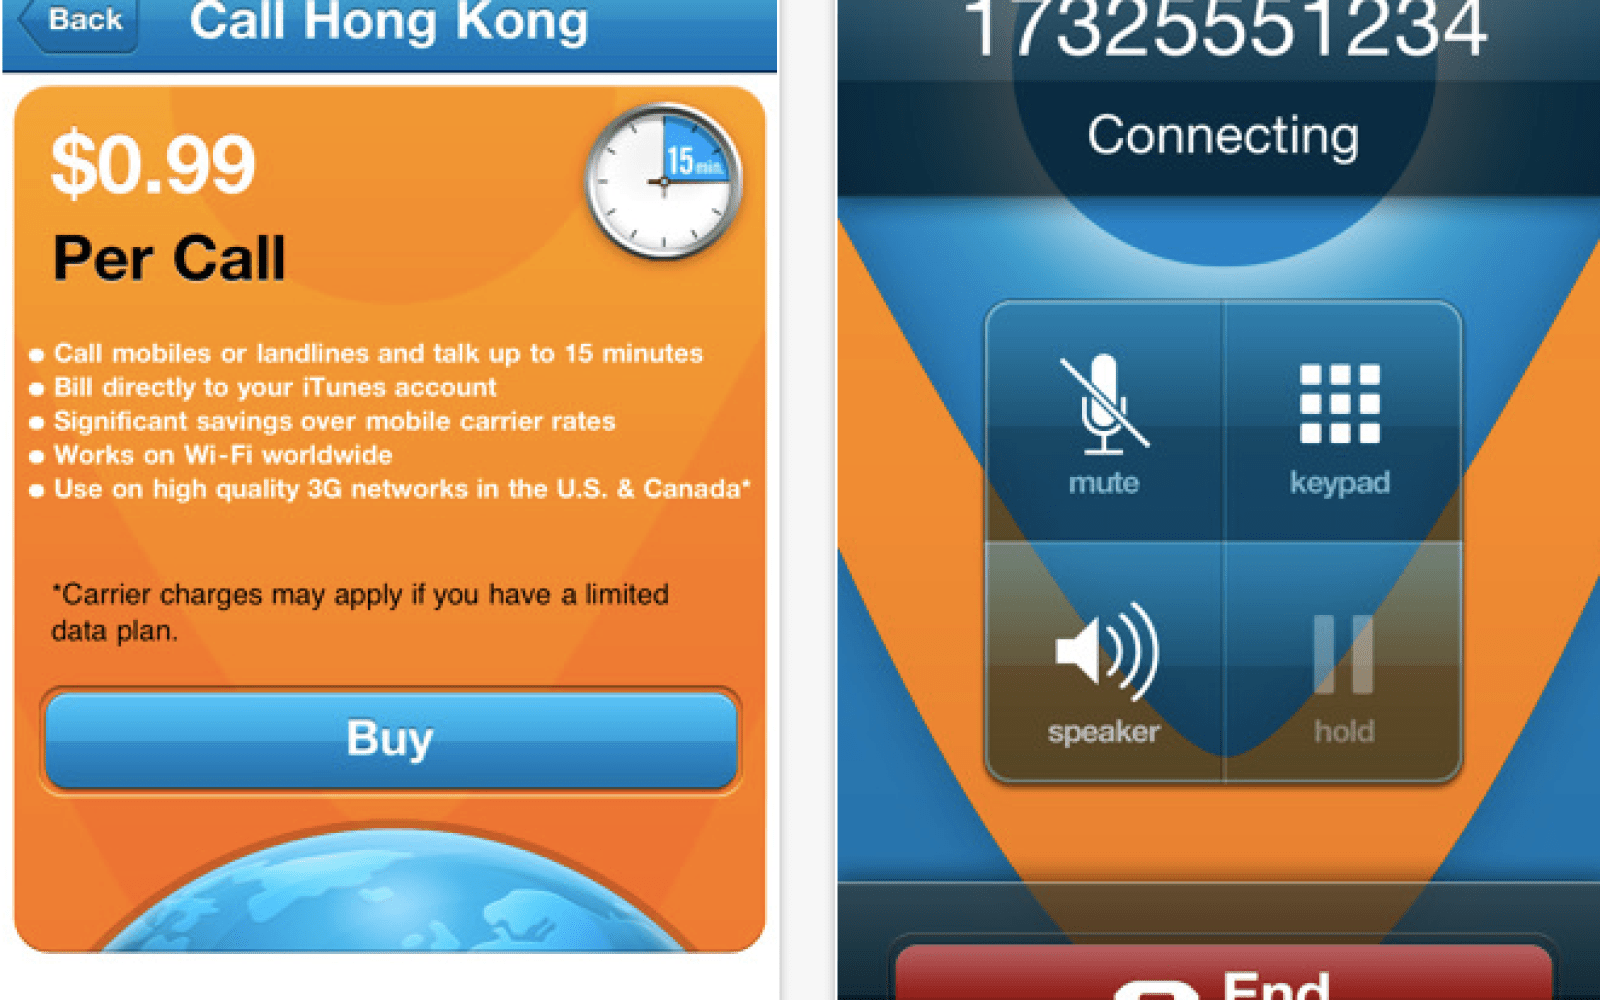 vonage releases time to call iphone app with low